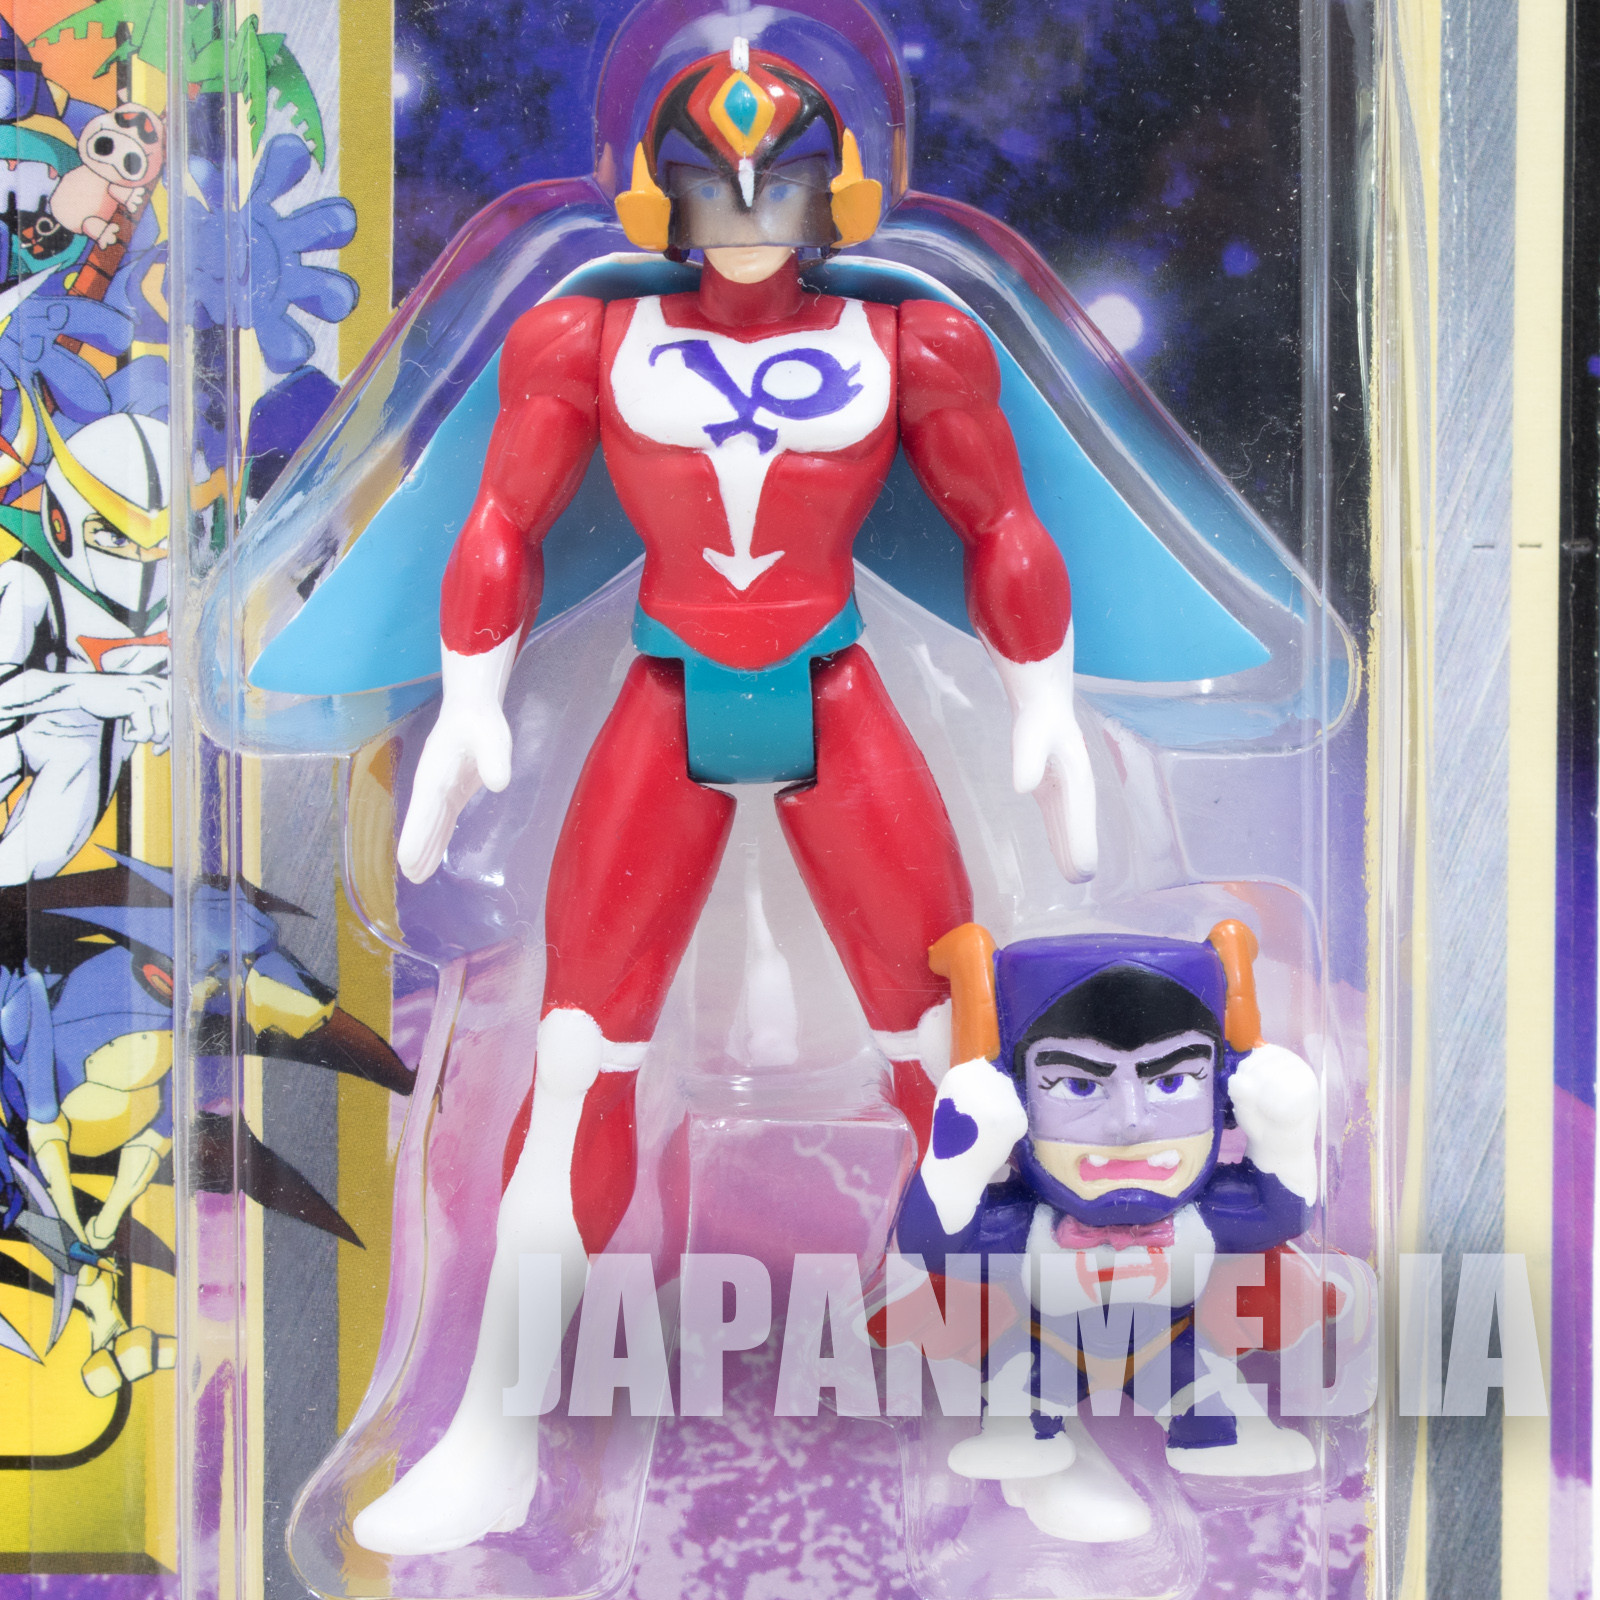 Hurricane Polymar Tatsunoko Production Action Figure Collection JAPAN ANIME MANGA